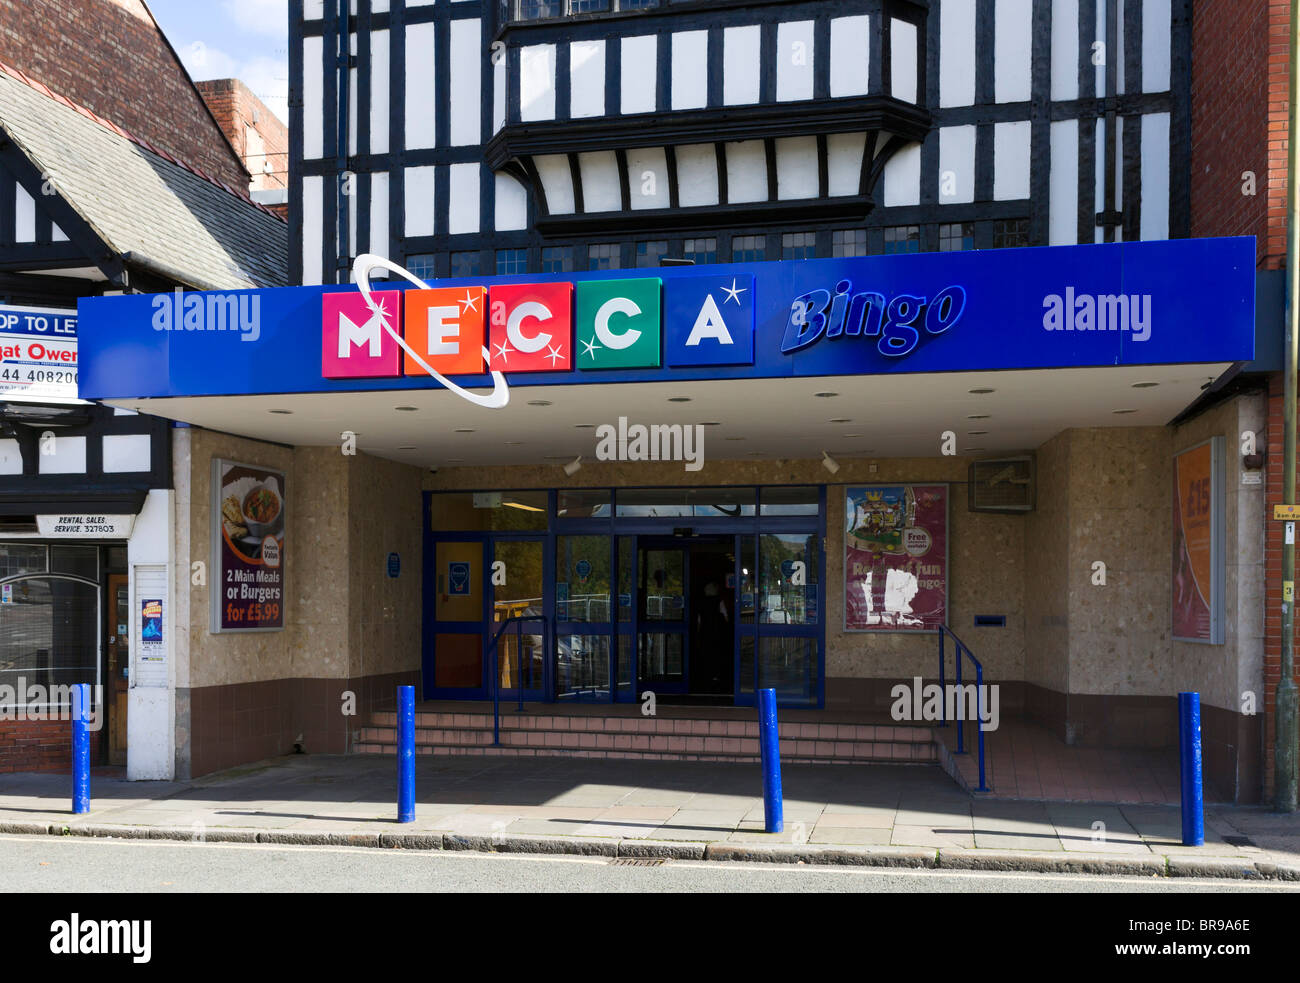 Mecca Bingo Hall, Chester, Cheshire, England, UK - Stock Image